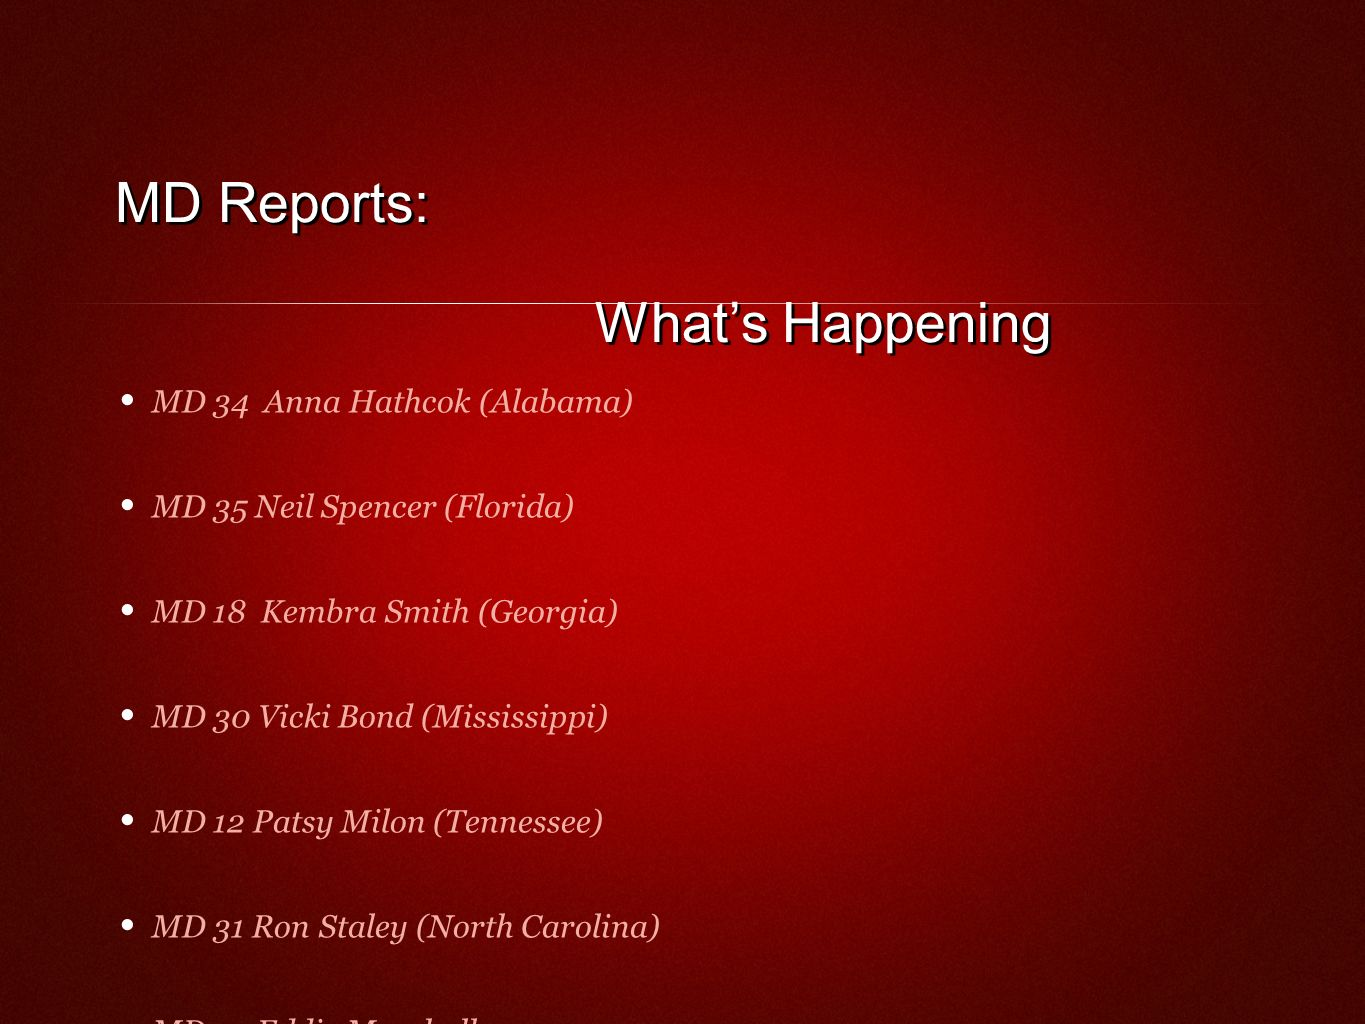 MD Reports: Whats Happening MD 34 Anna Hathcok (Alabama) MD 35 Neil Spencer (Florida) MD 18 Kembra Smith (Georgia) MD 30 Vicki Bond (Mississippi) MD 12 Patsy Milon (Tennessee) MD 31 Ron Staley (North Carolina) MD 32 Eddie Marshall